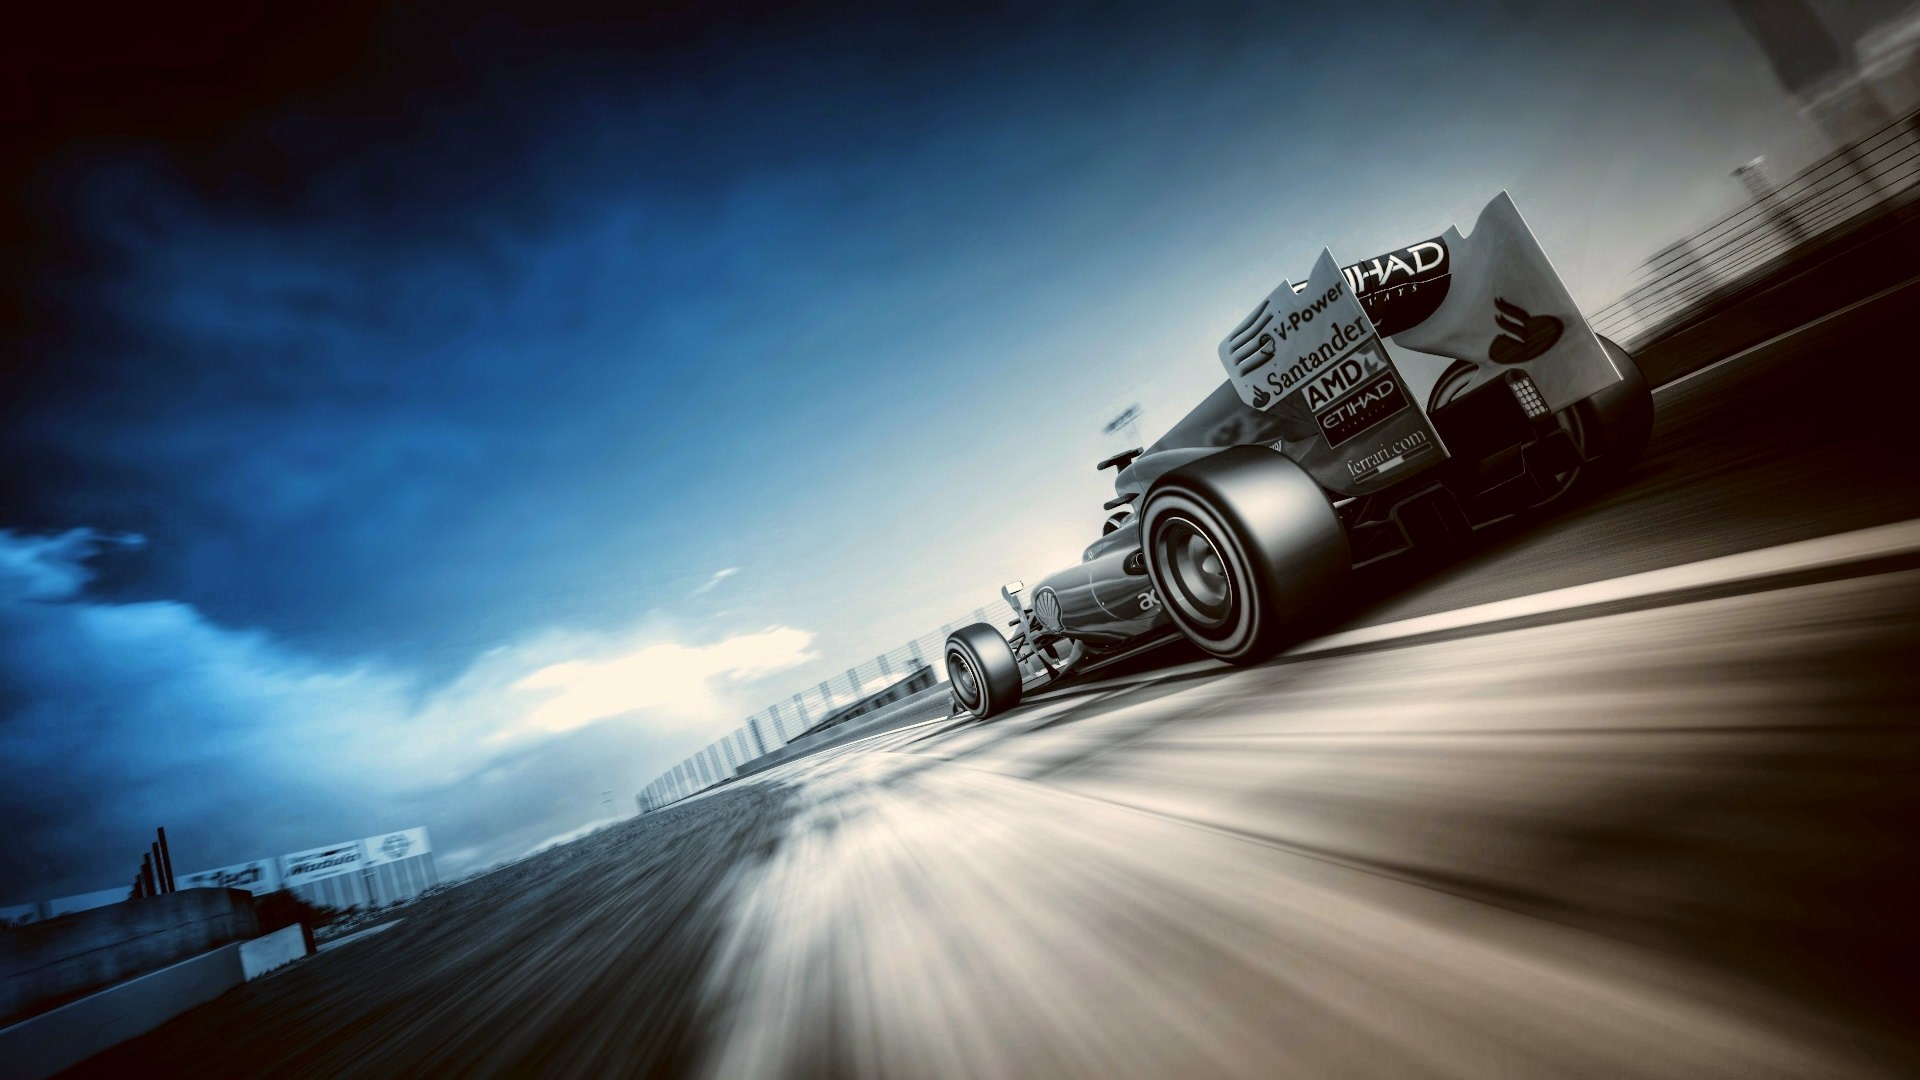 Formula 1 Hd: Backgrounds - Wallpaper Abyss - Page 3